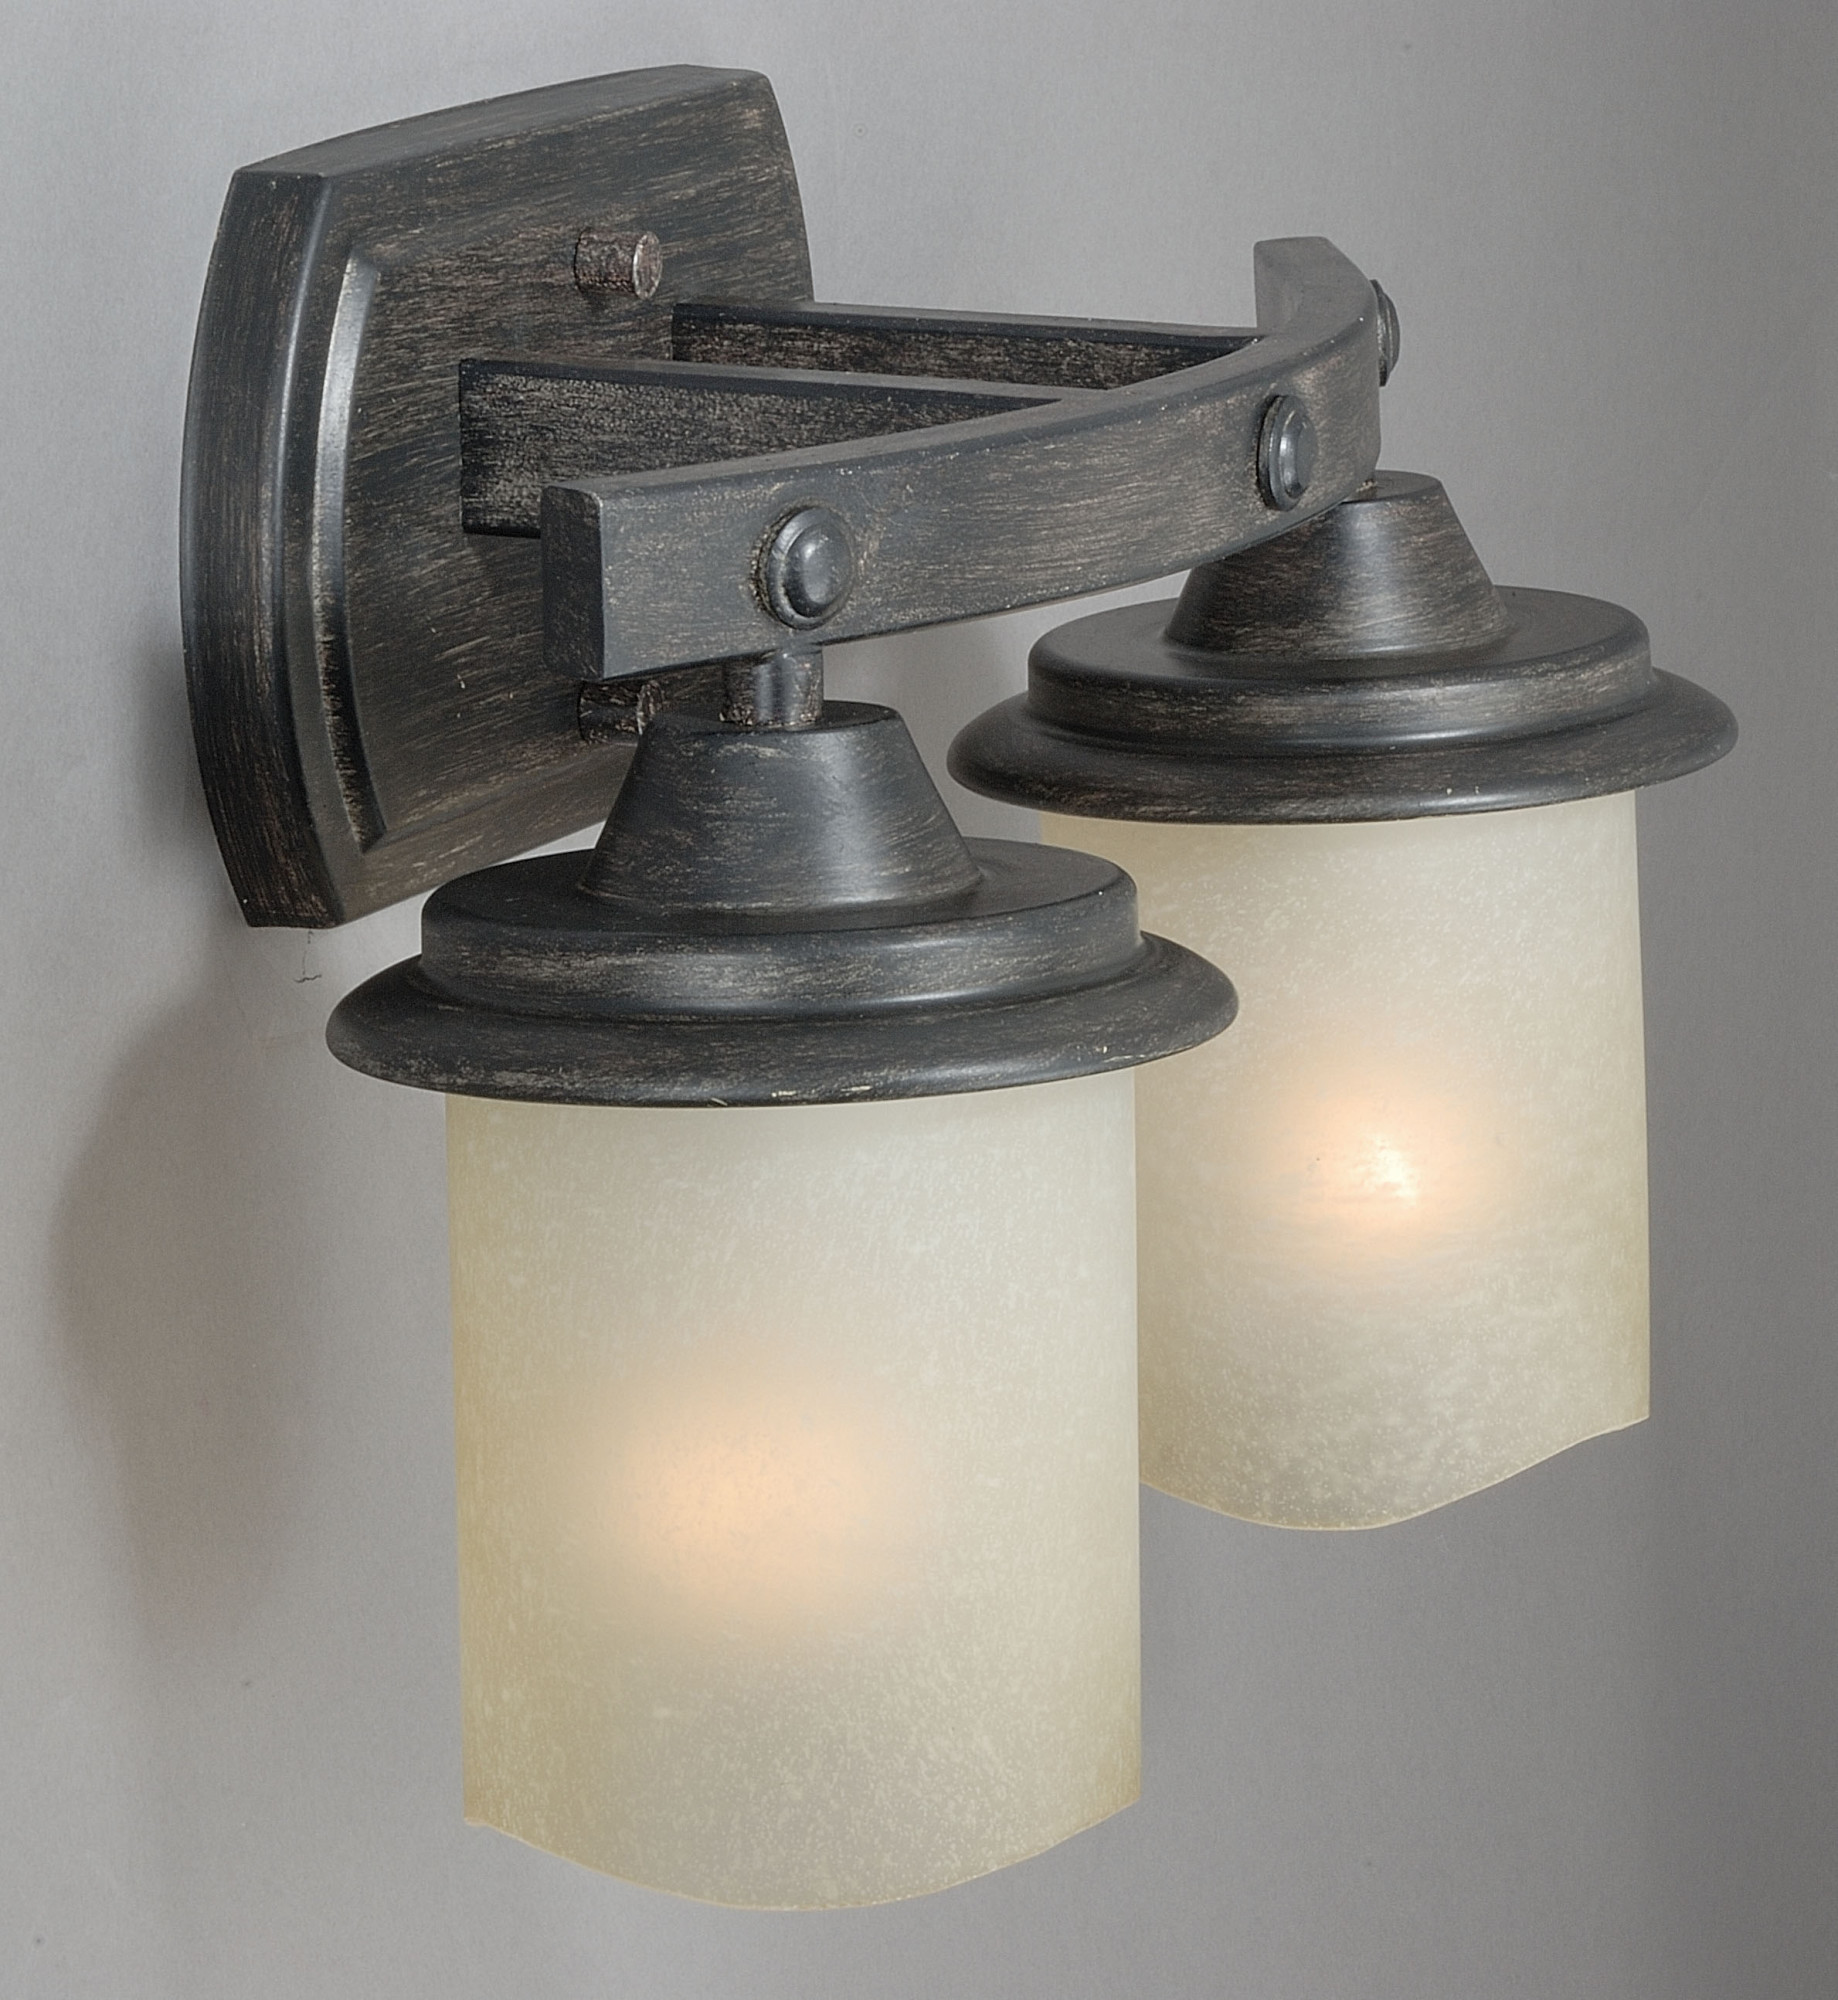 Vaxcel lighting w0182 halifax 2 light wall sconce with cylinder shaped frosted g